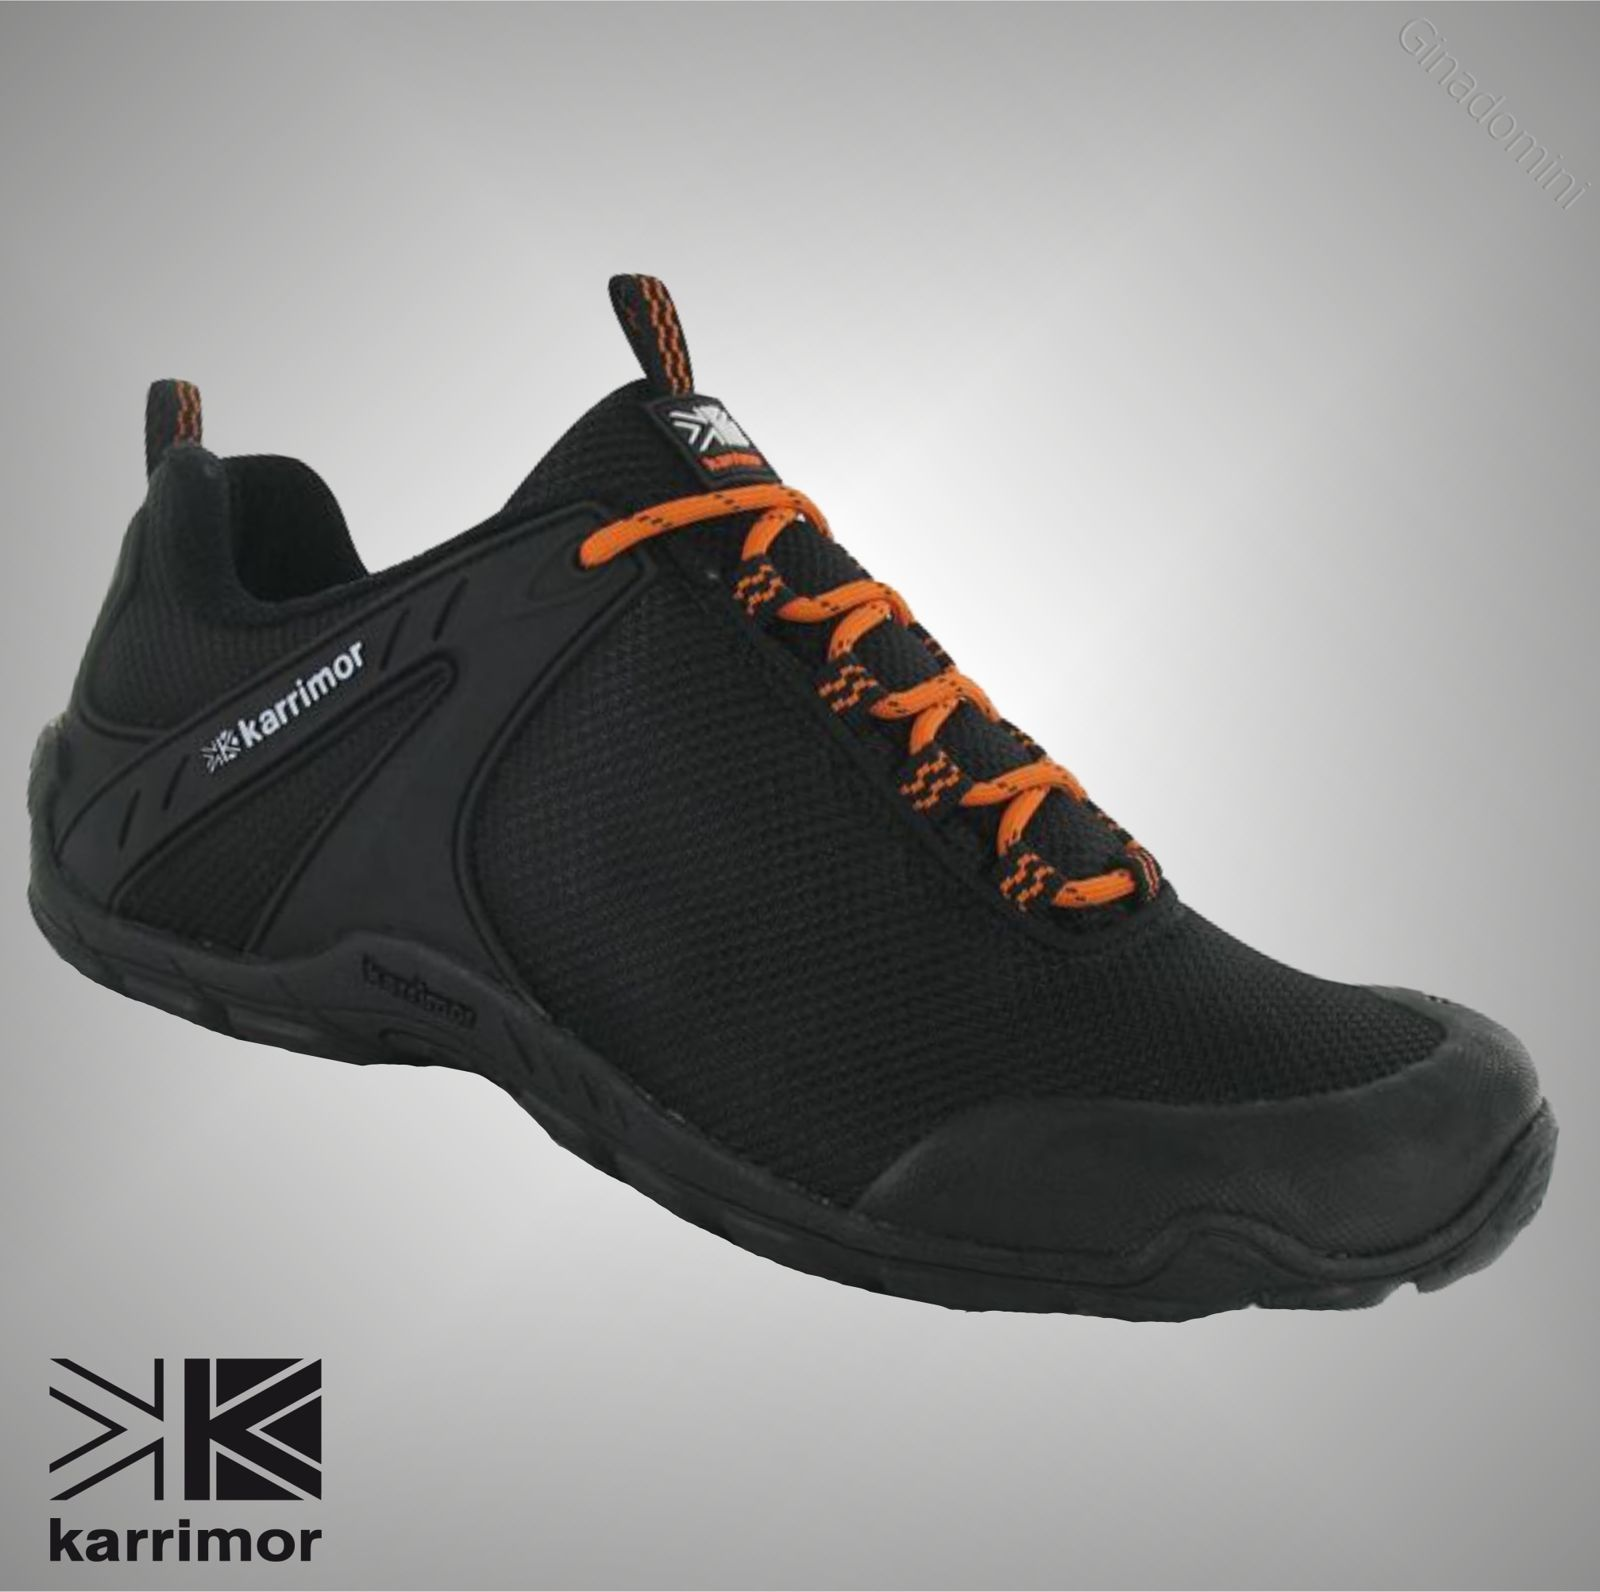 0fbcb2d61c99 The design of the Karrimor Newton Mens Walking Shoes features a great and  rather unique look that is sure. Newton Mens Walking Shoes is built to last  with a ...